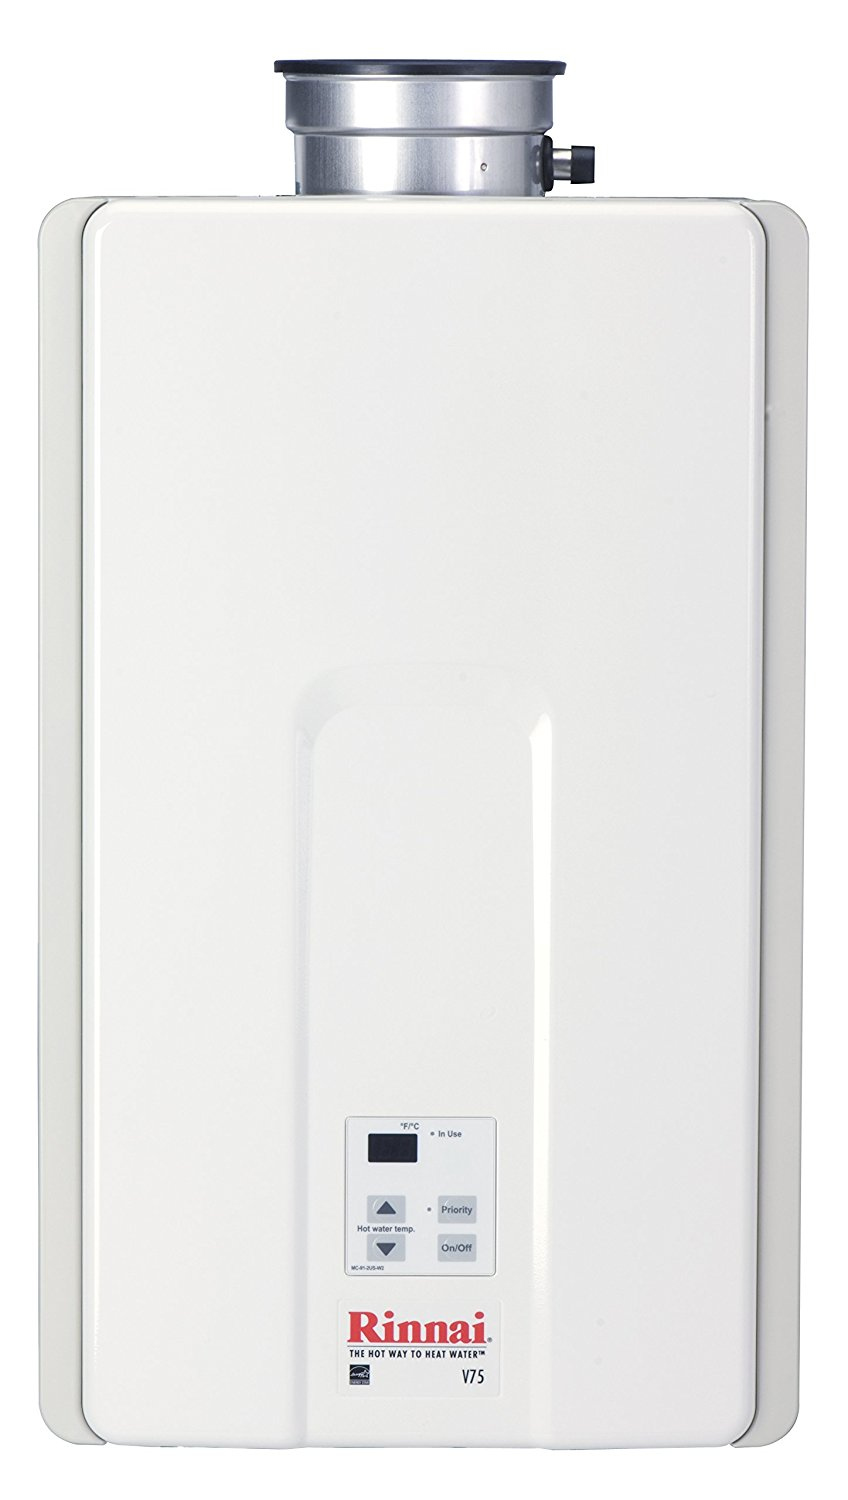 Tankless Water Heater Reviews-Rinnai V75iN Natural Gas Indoor Tankless Water Heater (7.5 GPM)